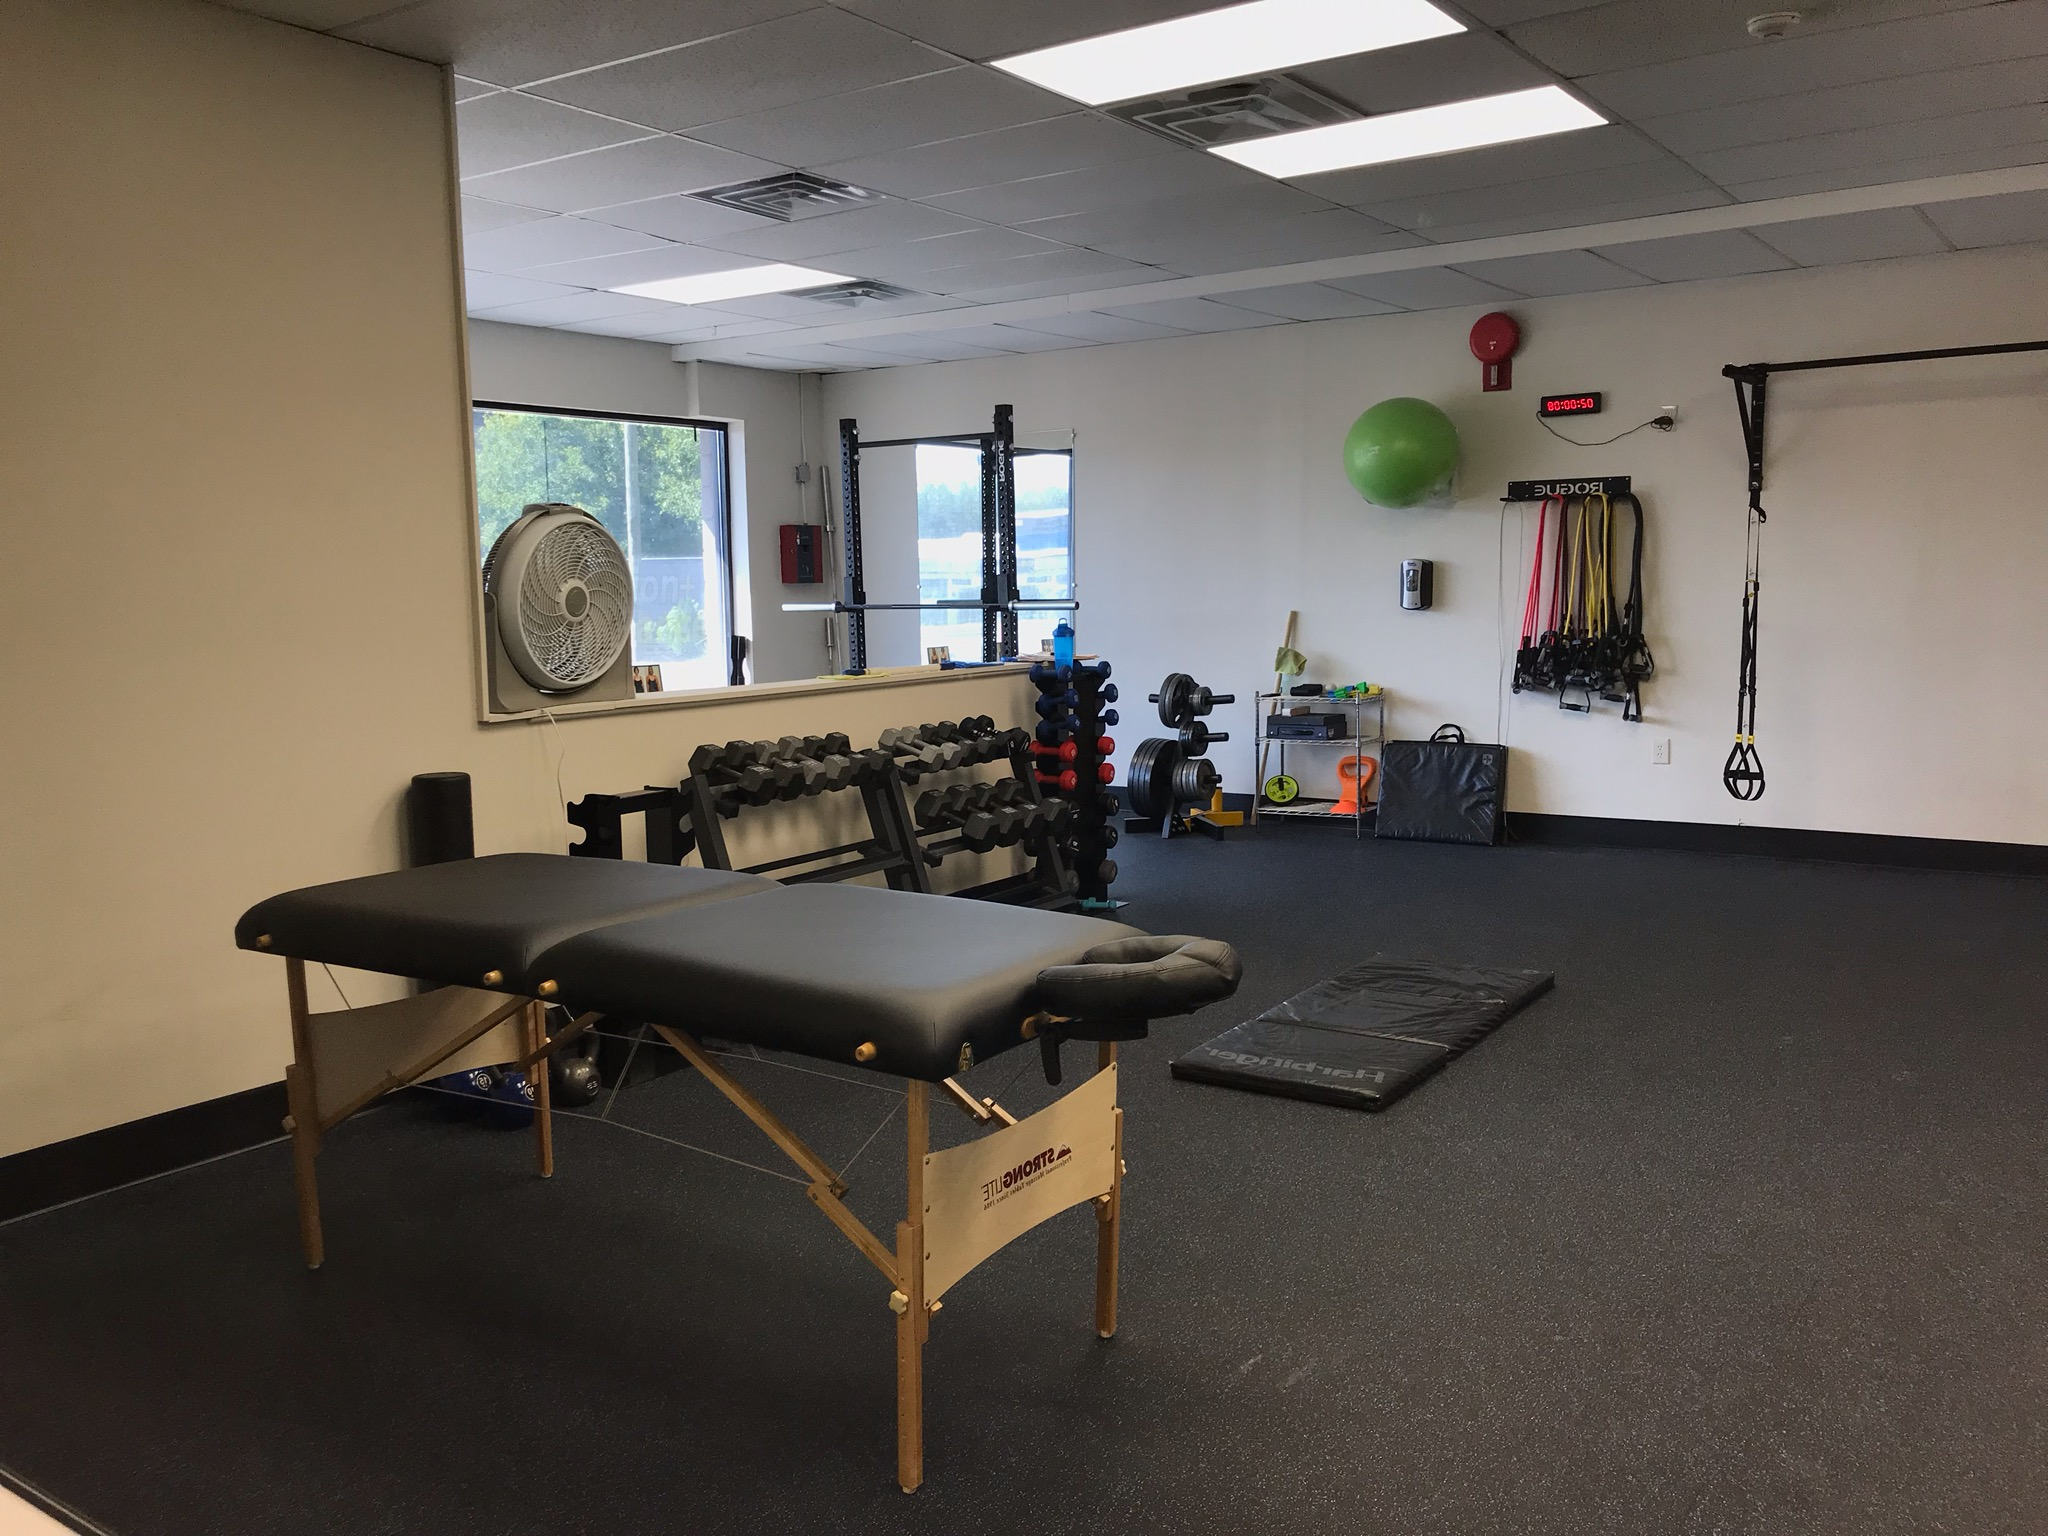 Body Rehabilitation - Are you tired of overall body aches and pains from daily life? Here at Prevention + Performance, our goal is to provide you with the proper education, techniques and tools to ease overall body pain before, during and after physical exercise.